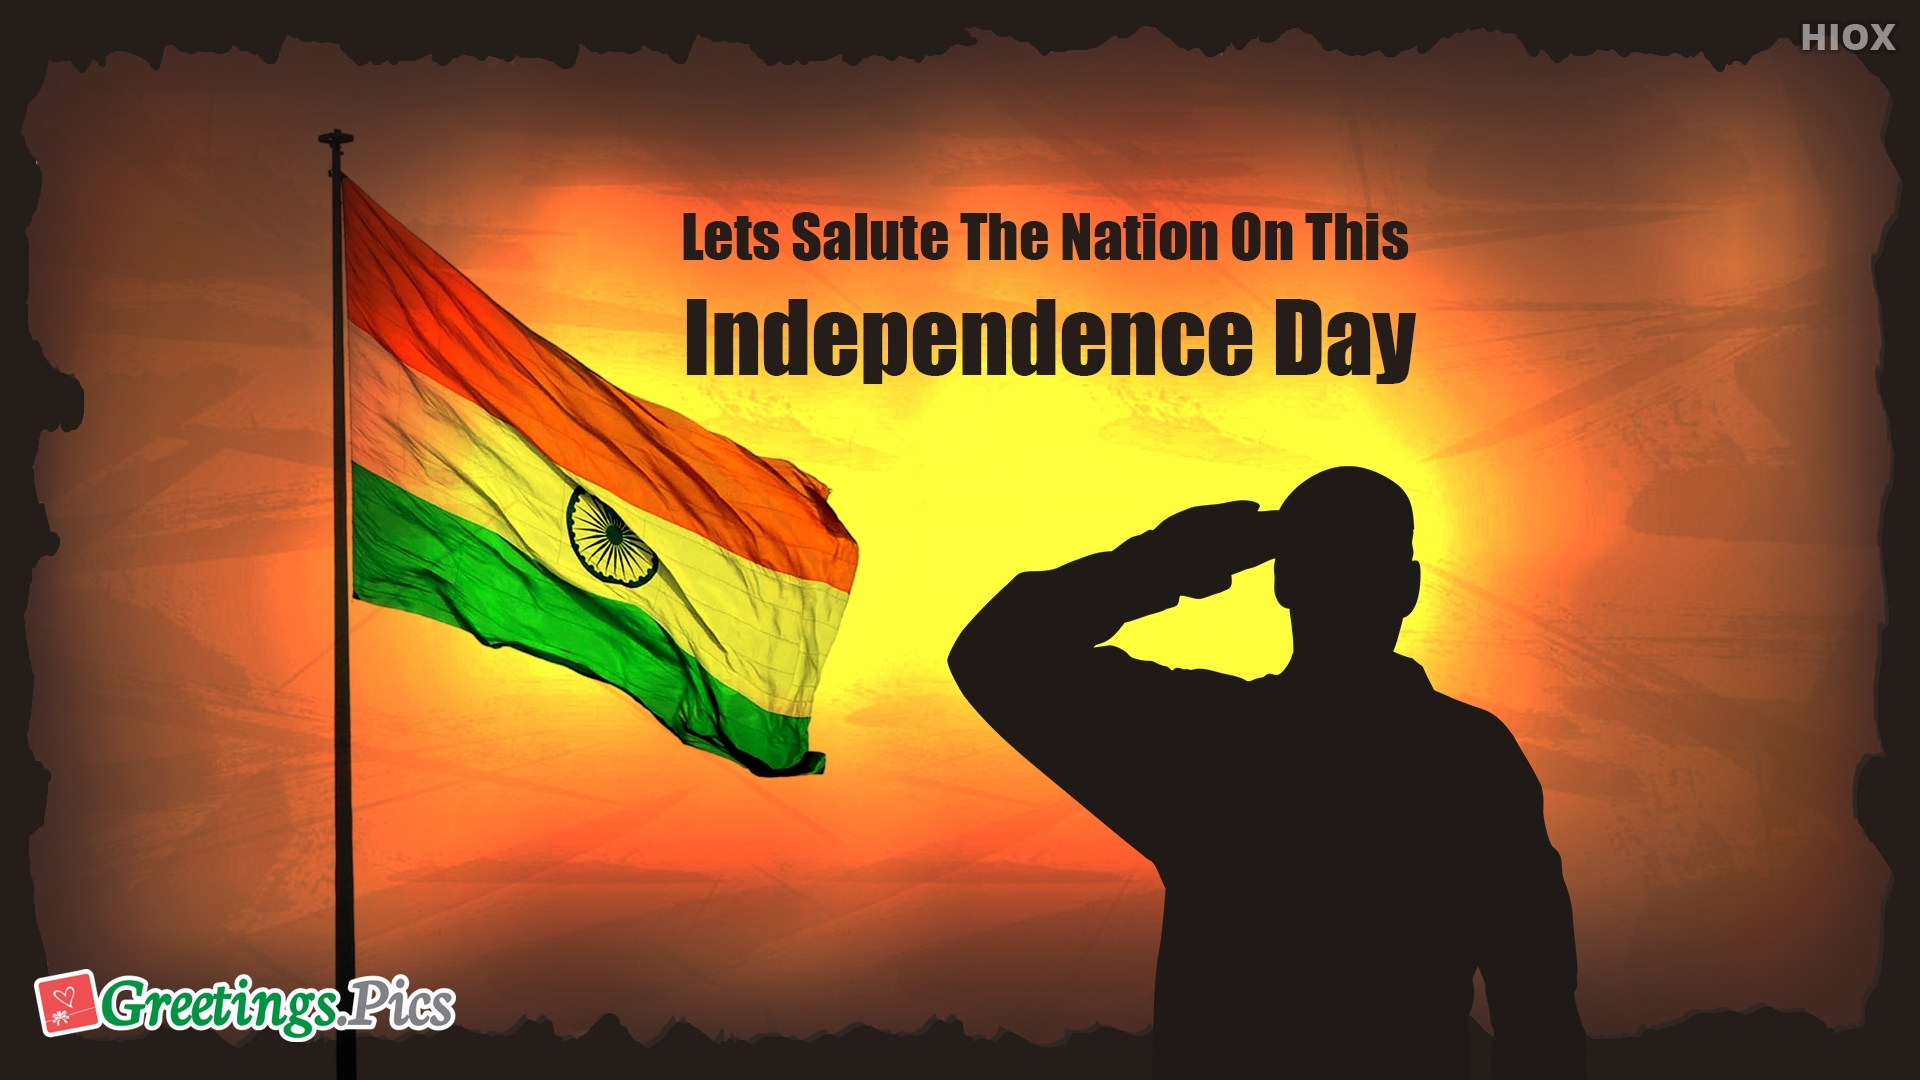 Lets Salute The Nation On This Independence Day